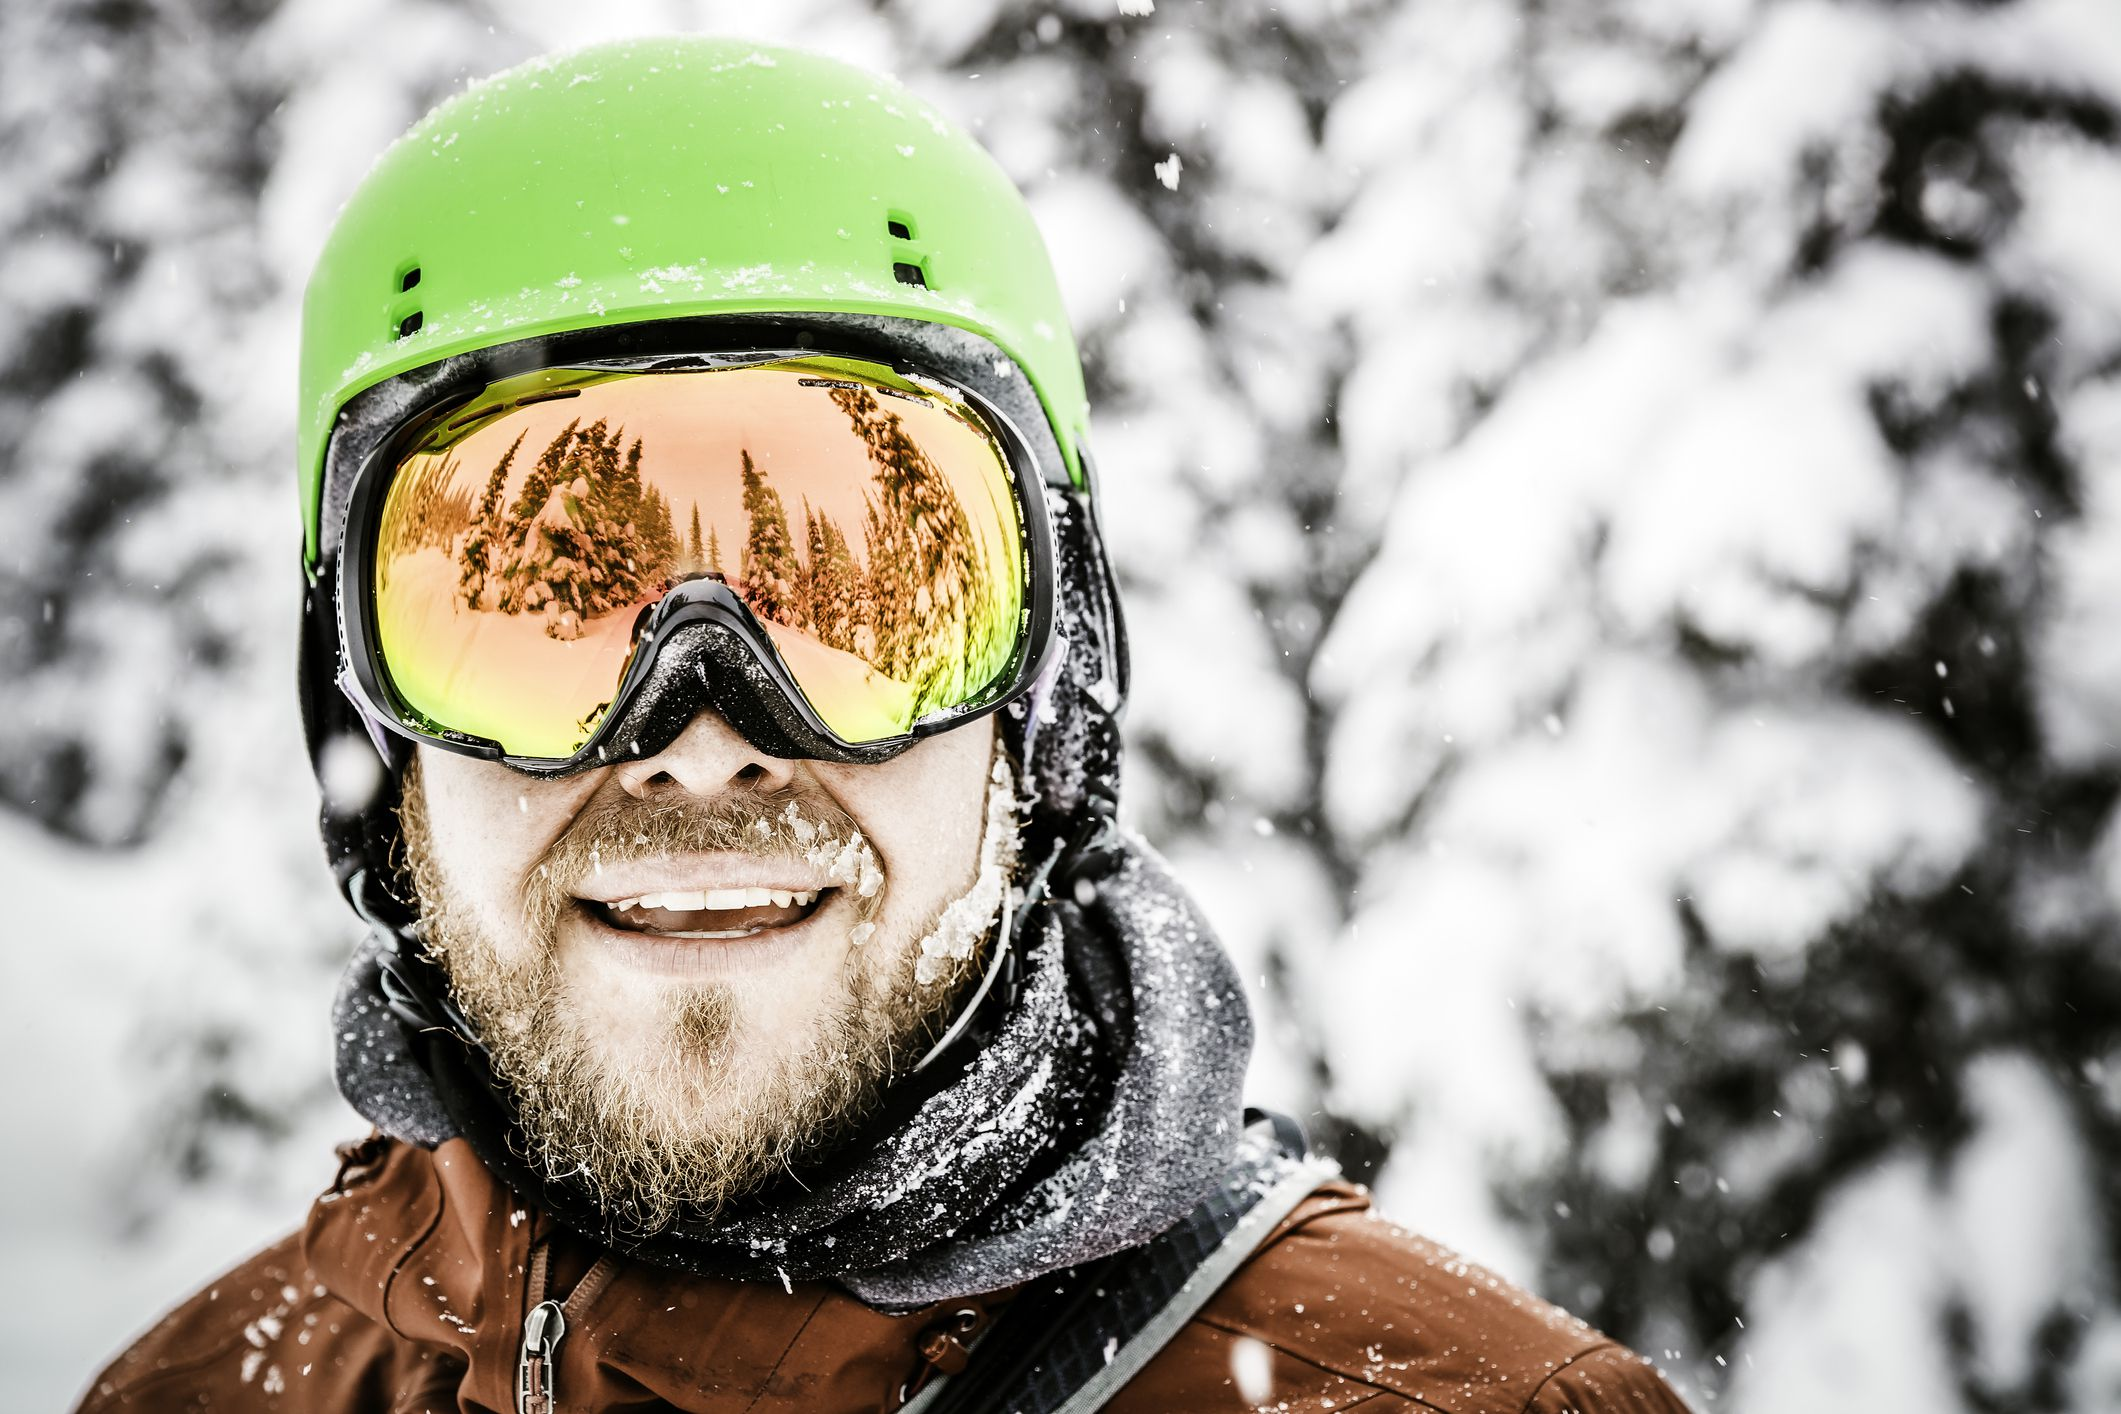 a34f6f7caf2 The 8 Best Ski Goggles of 2019